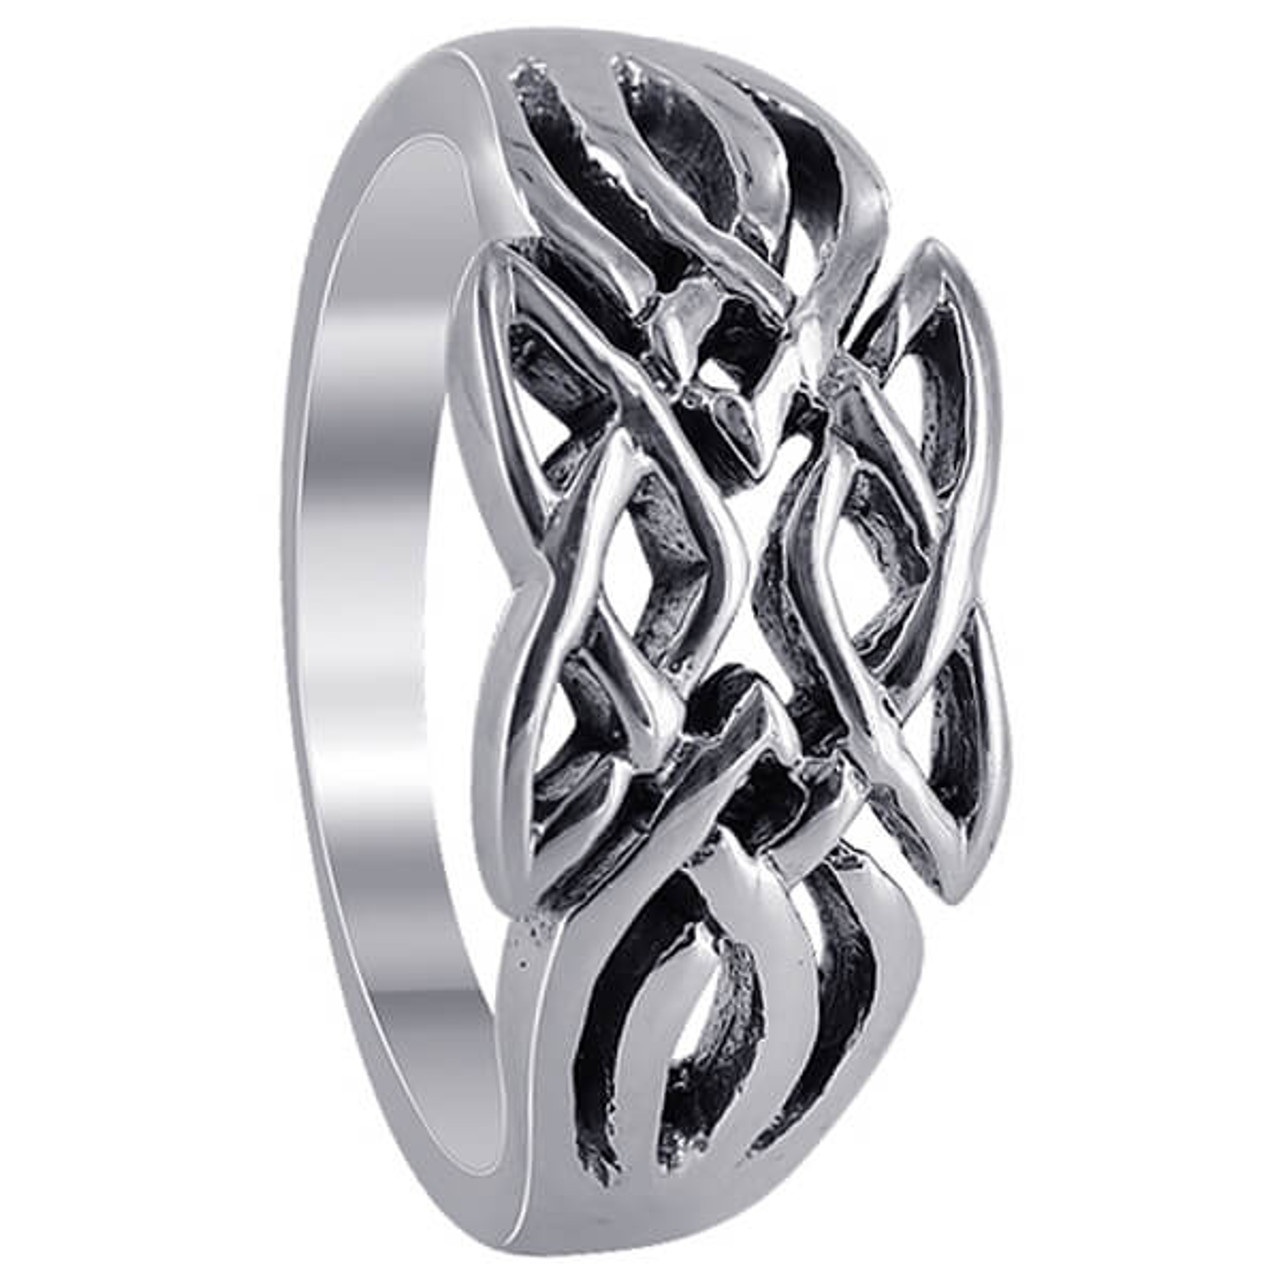 Sterling Silver Knot Design Ring